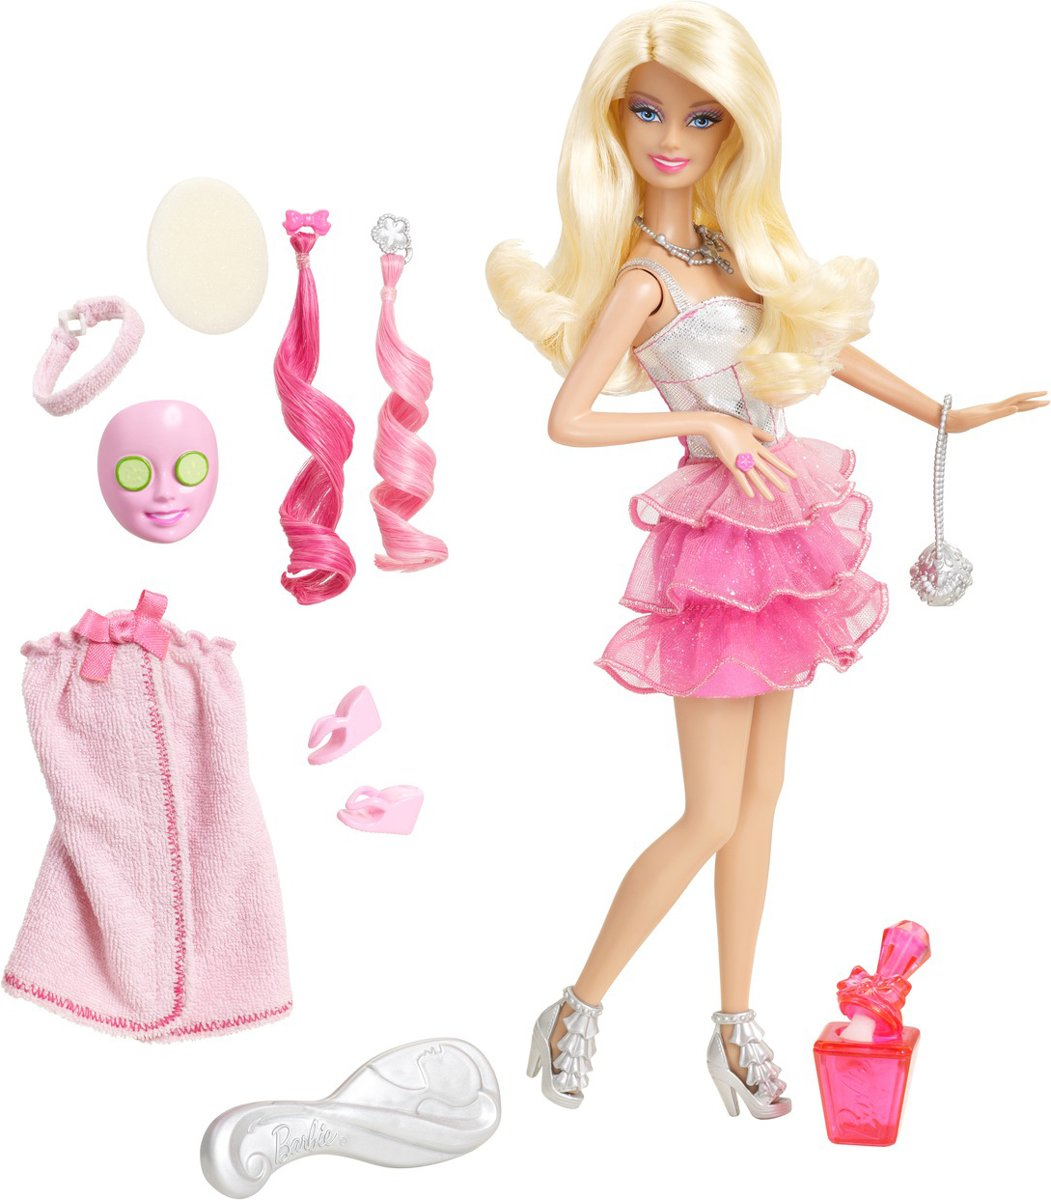 Barbie Beauty Spa - Barbiepop